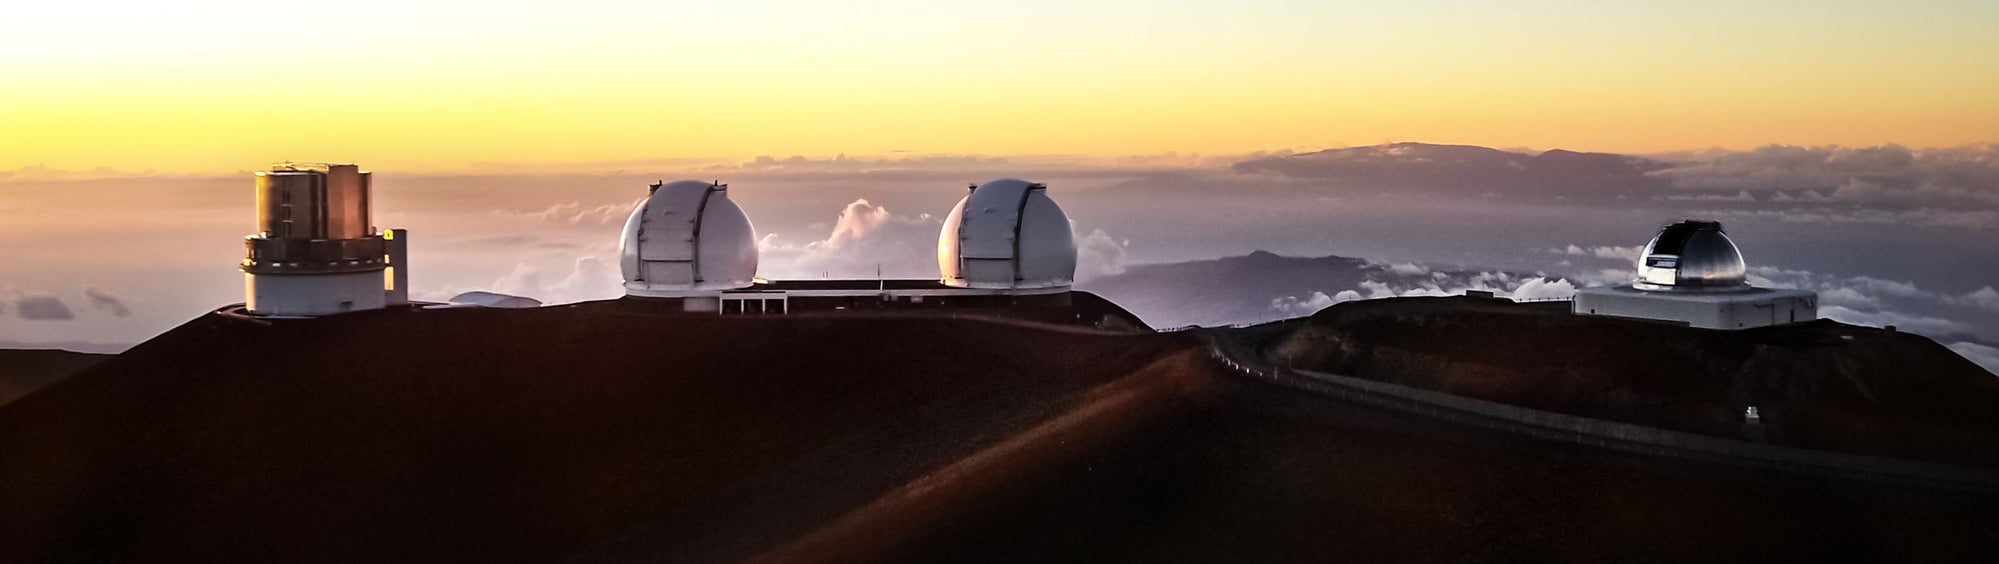 Scientists are speaking out against the 'violence' required to build this new telescope